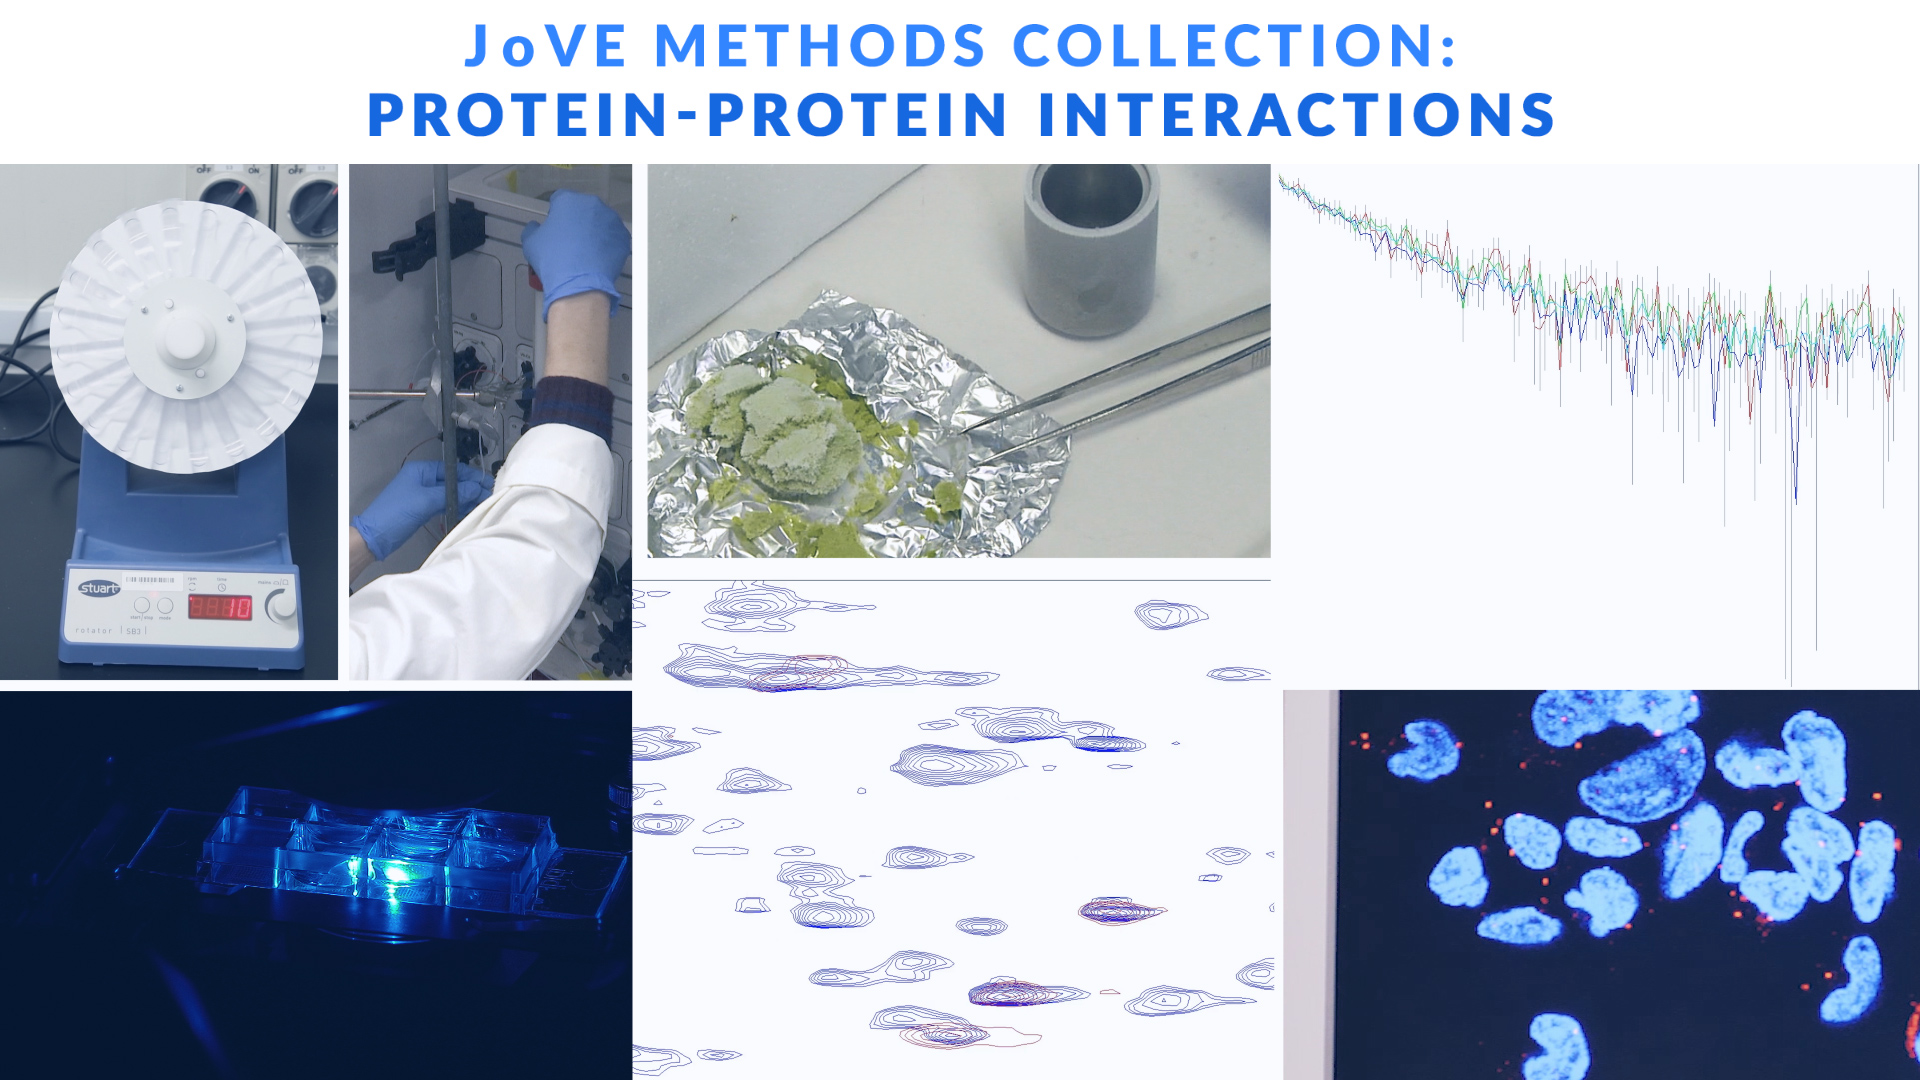 JoVE Methods Collection Highlights: Protein-Protein Interactions